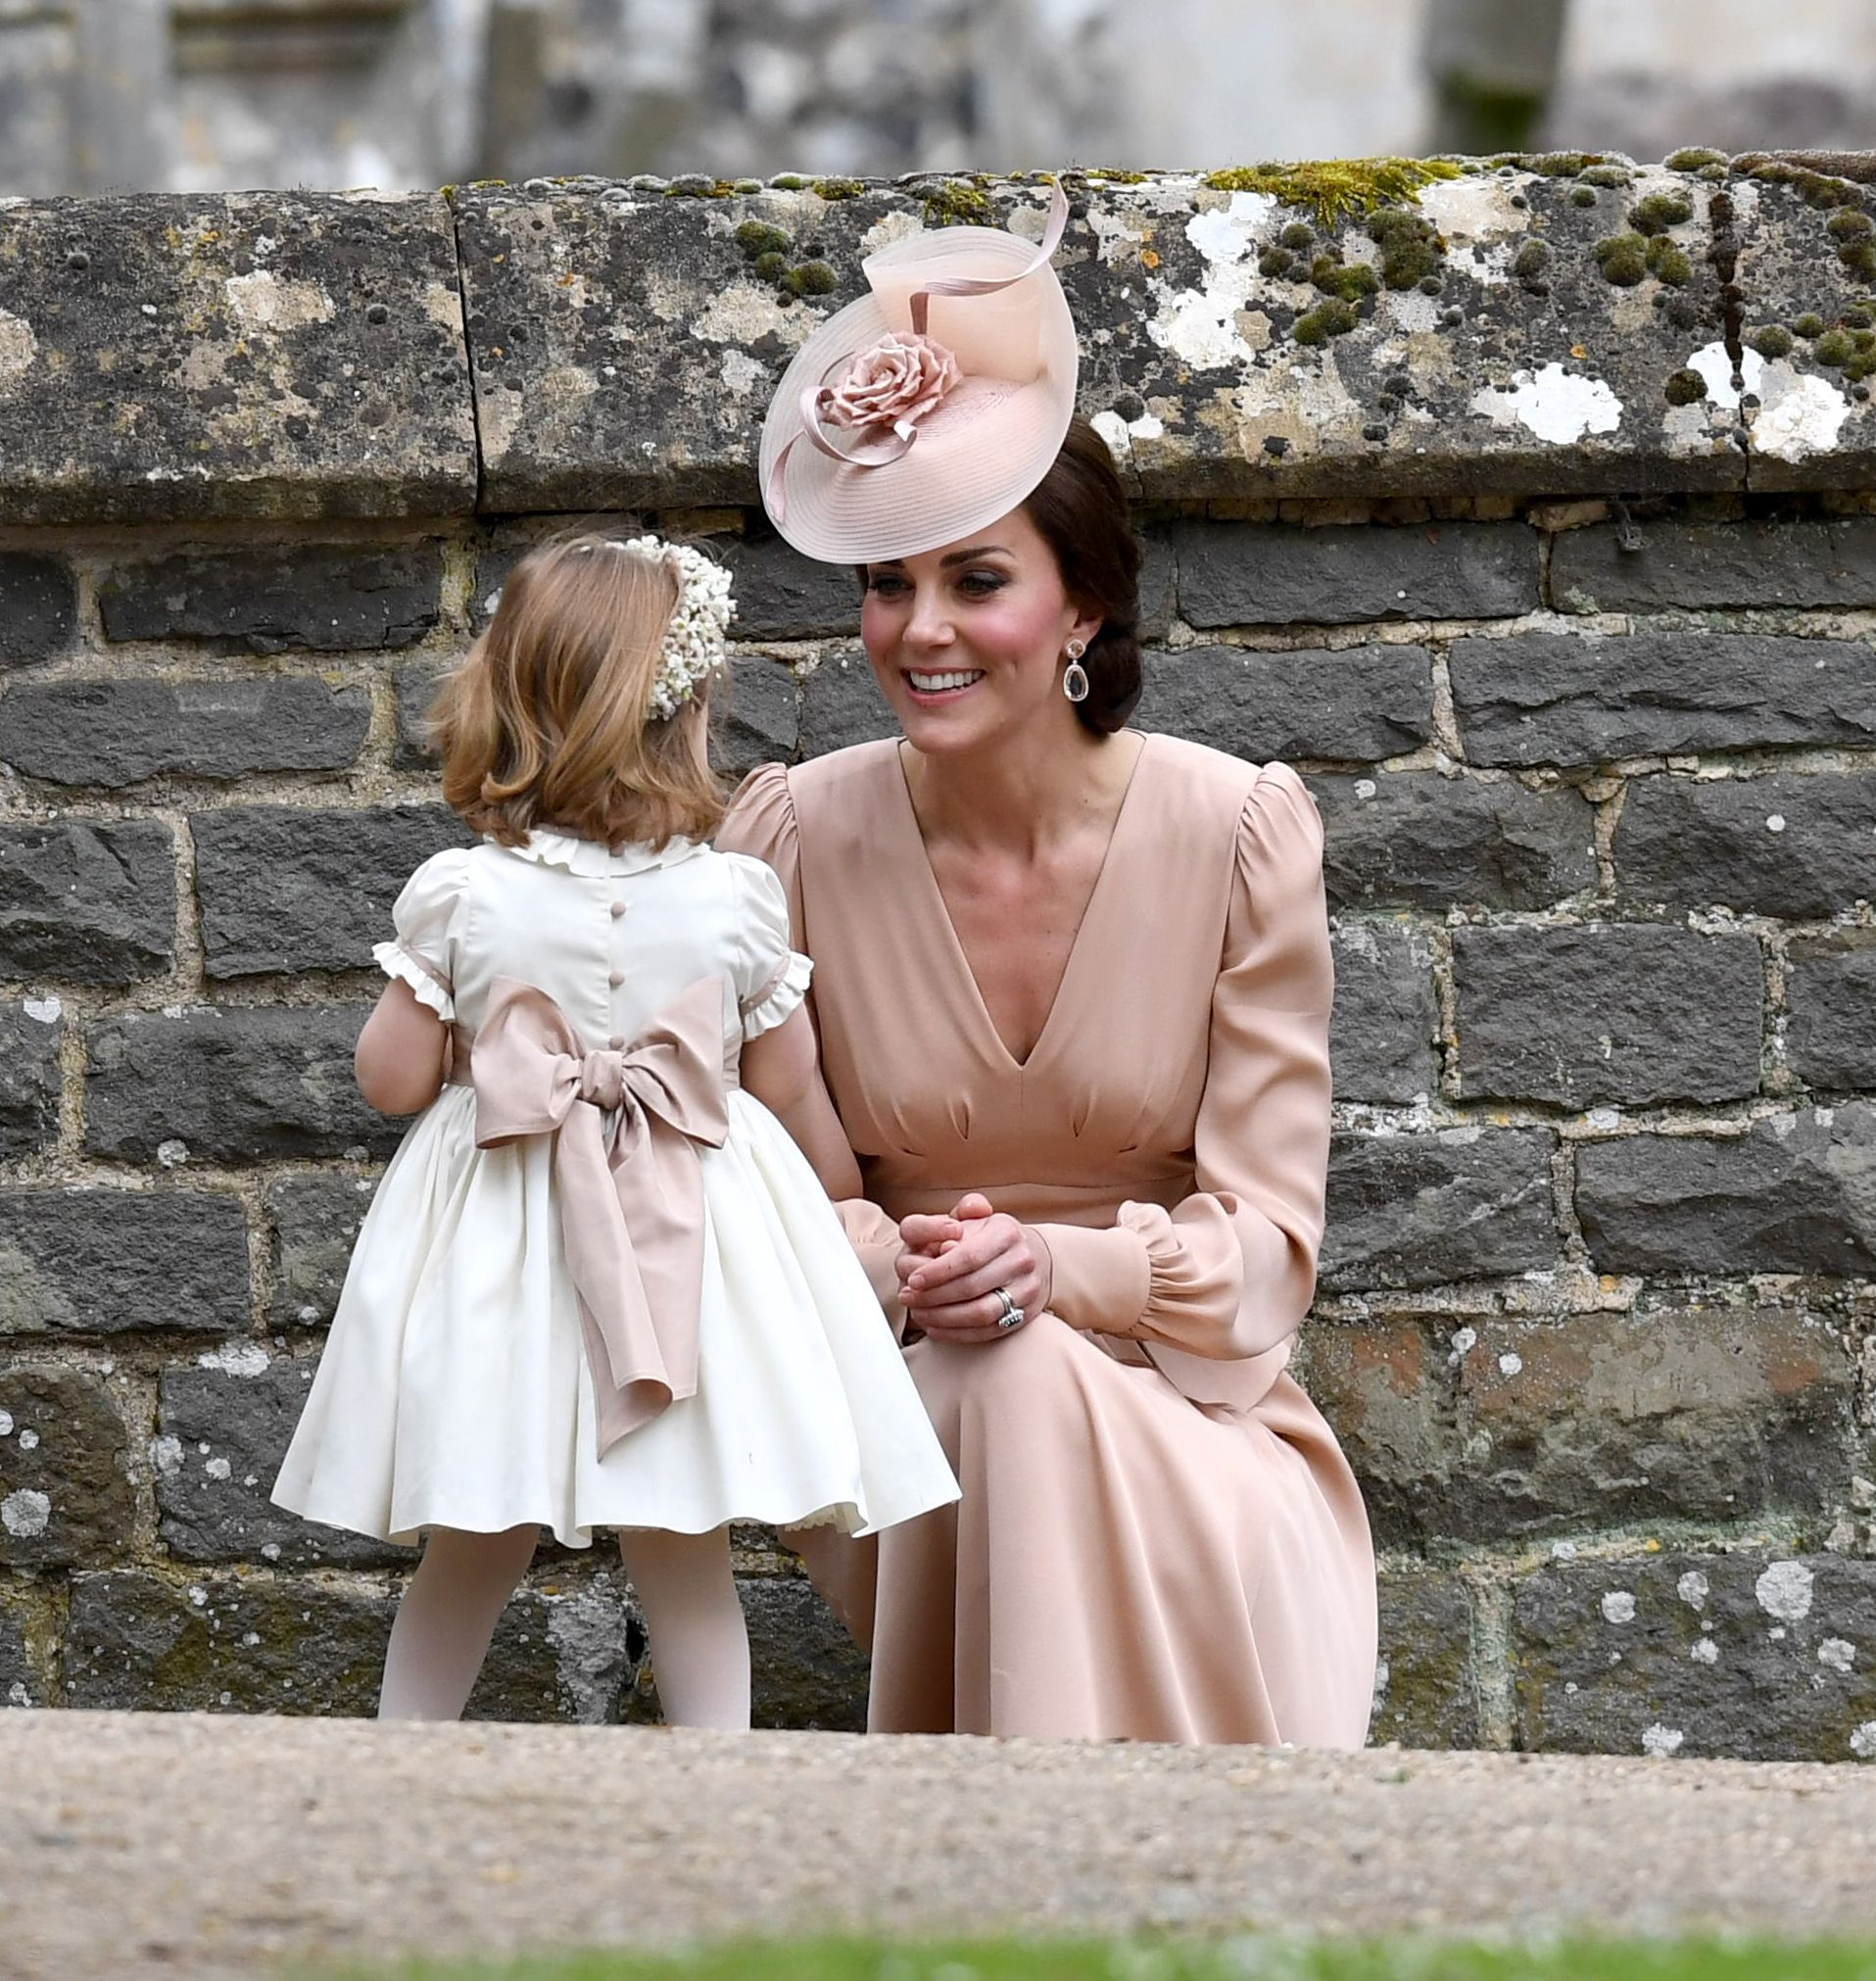 Duchess of Cambridge and Princess Charlotte at the wedding of James Matthews and Pippa Middleton